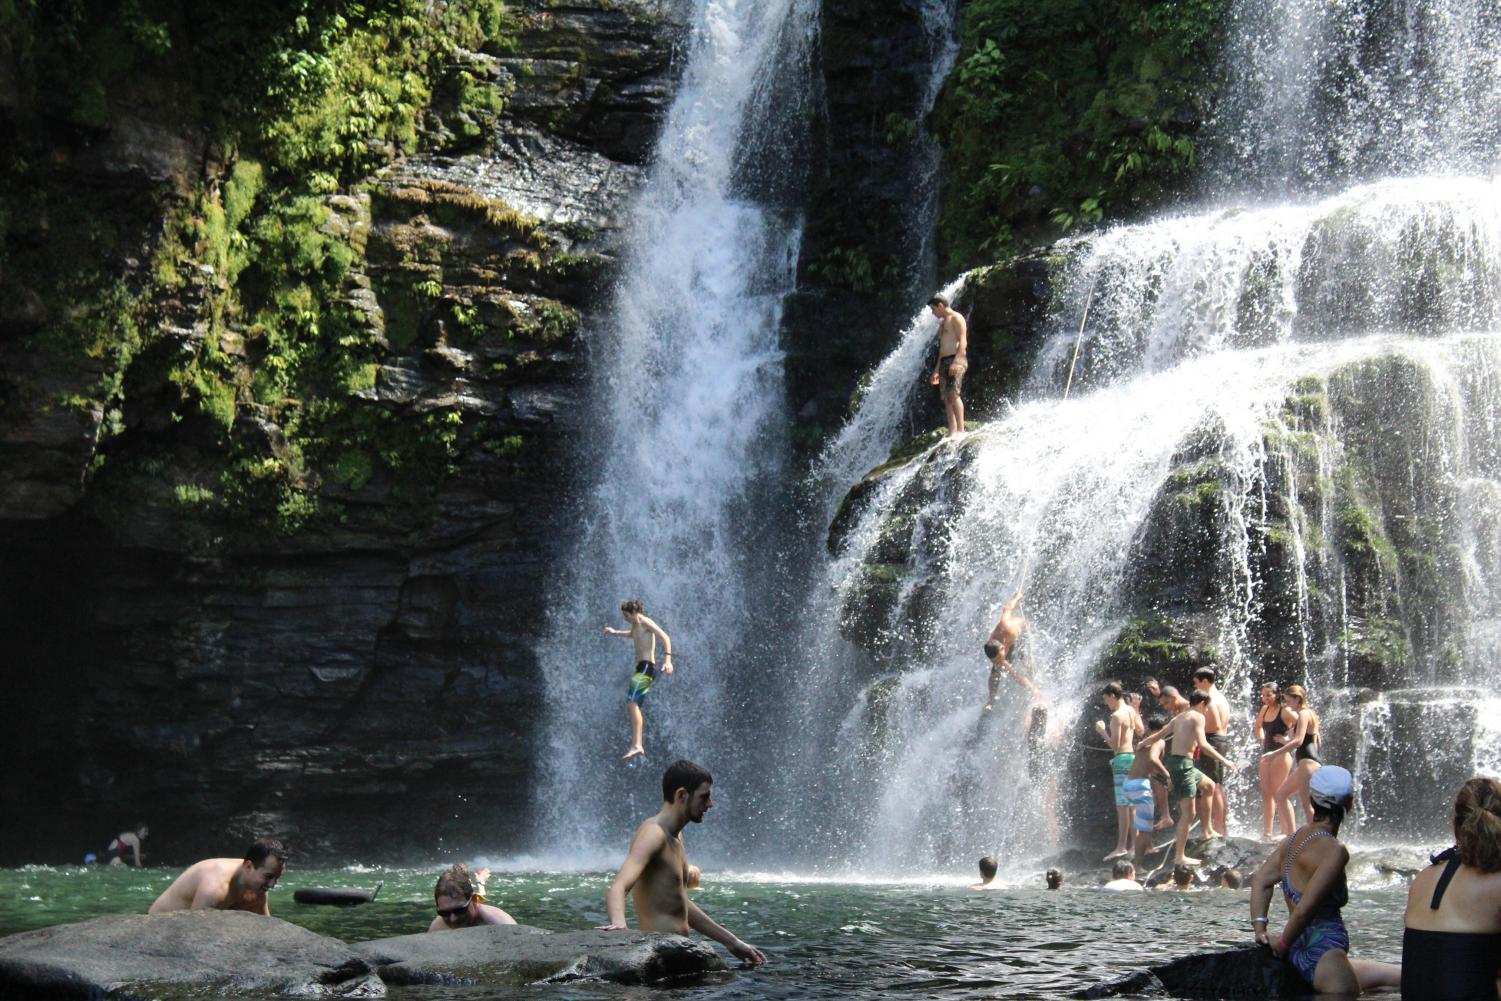 Students from the class of 2019 jump off the waterfall after a day of hiking and horseback riding in Costa Rica. Current sophomores plan to partake in similar adventures next week including ziplining, service activities, and horseback riding.